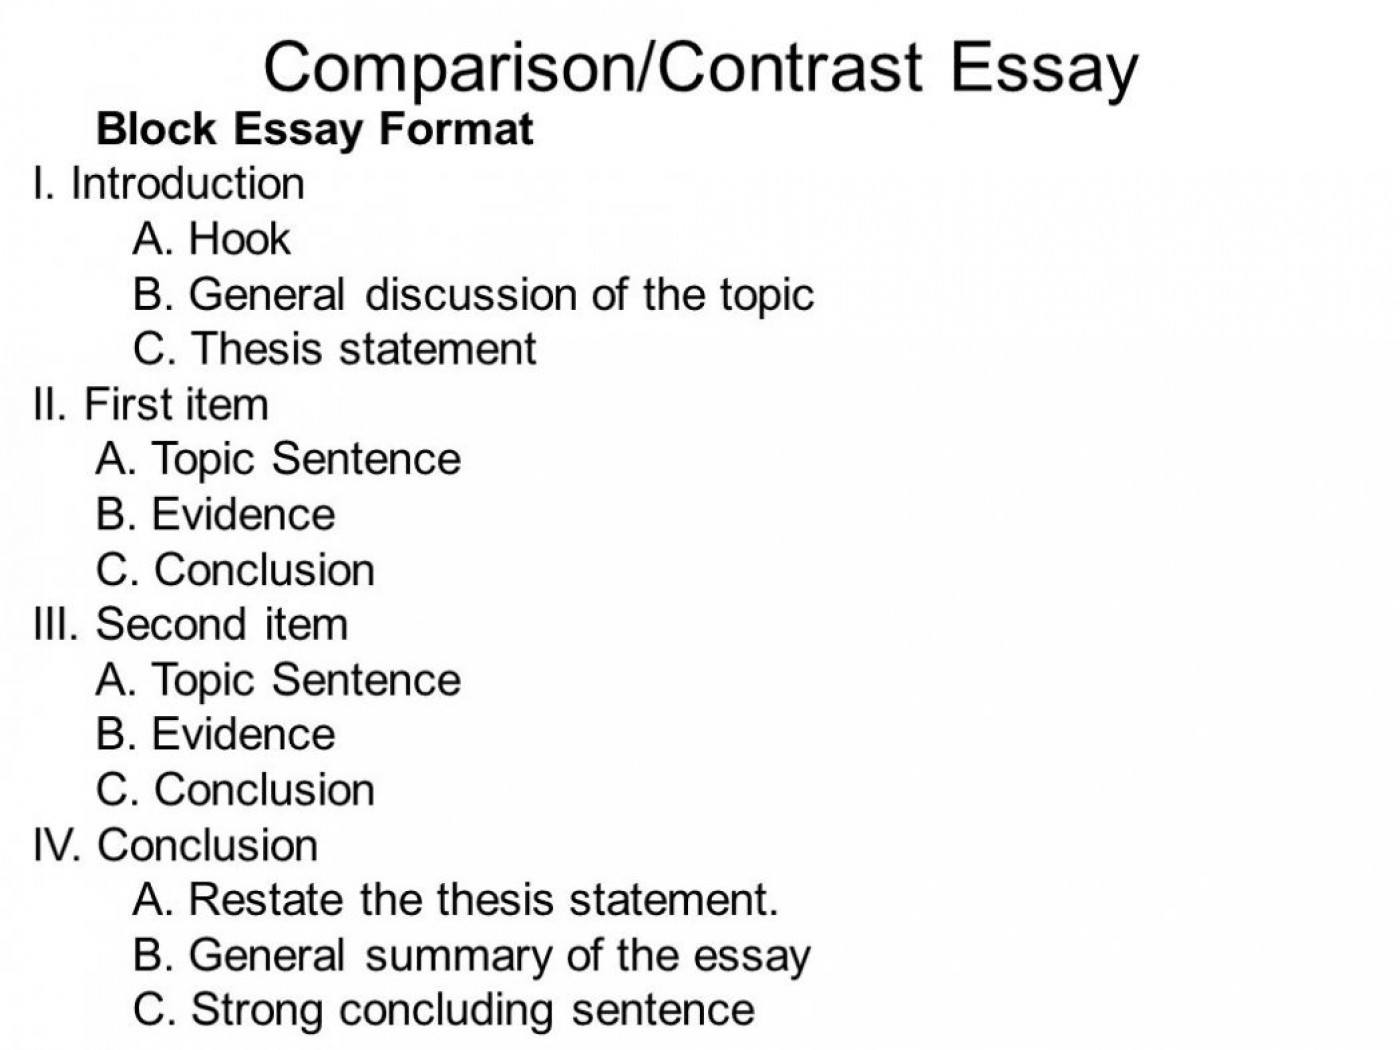 005 Essay Example Good Compare And Contrast What Are Topics Argumentative About Youth Sports Sli Dealing With Medicine Unbelievable The Great Gatsby Tom Examples Middle School Movie Book 1400